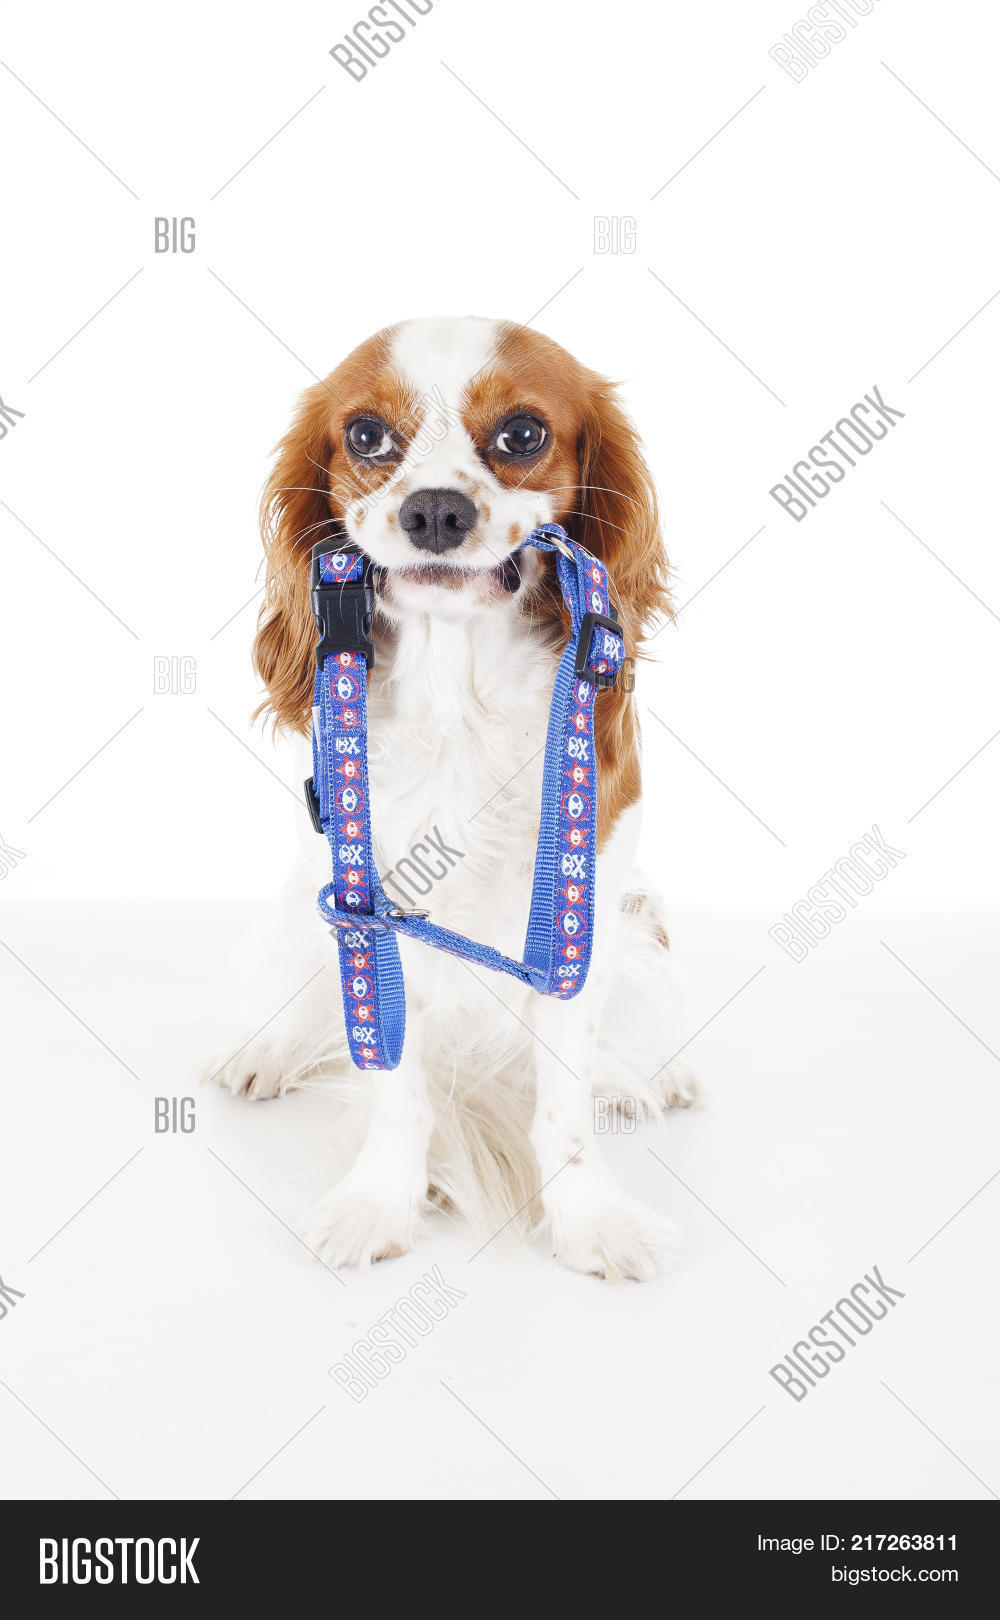 Great King Charles Canine Adorable Dog - 217263811  2018_936227  .jpg